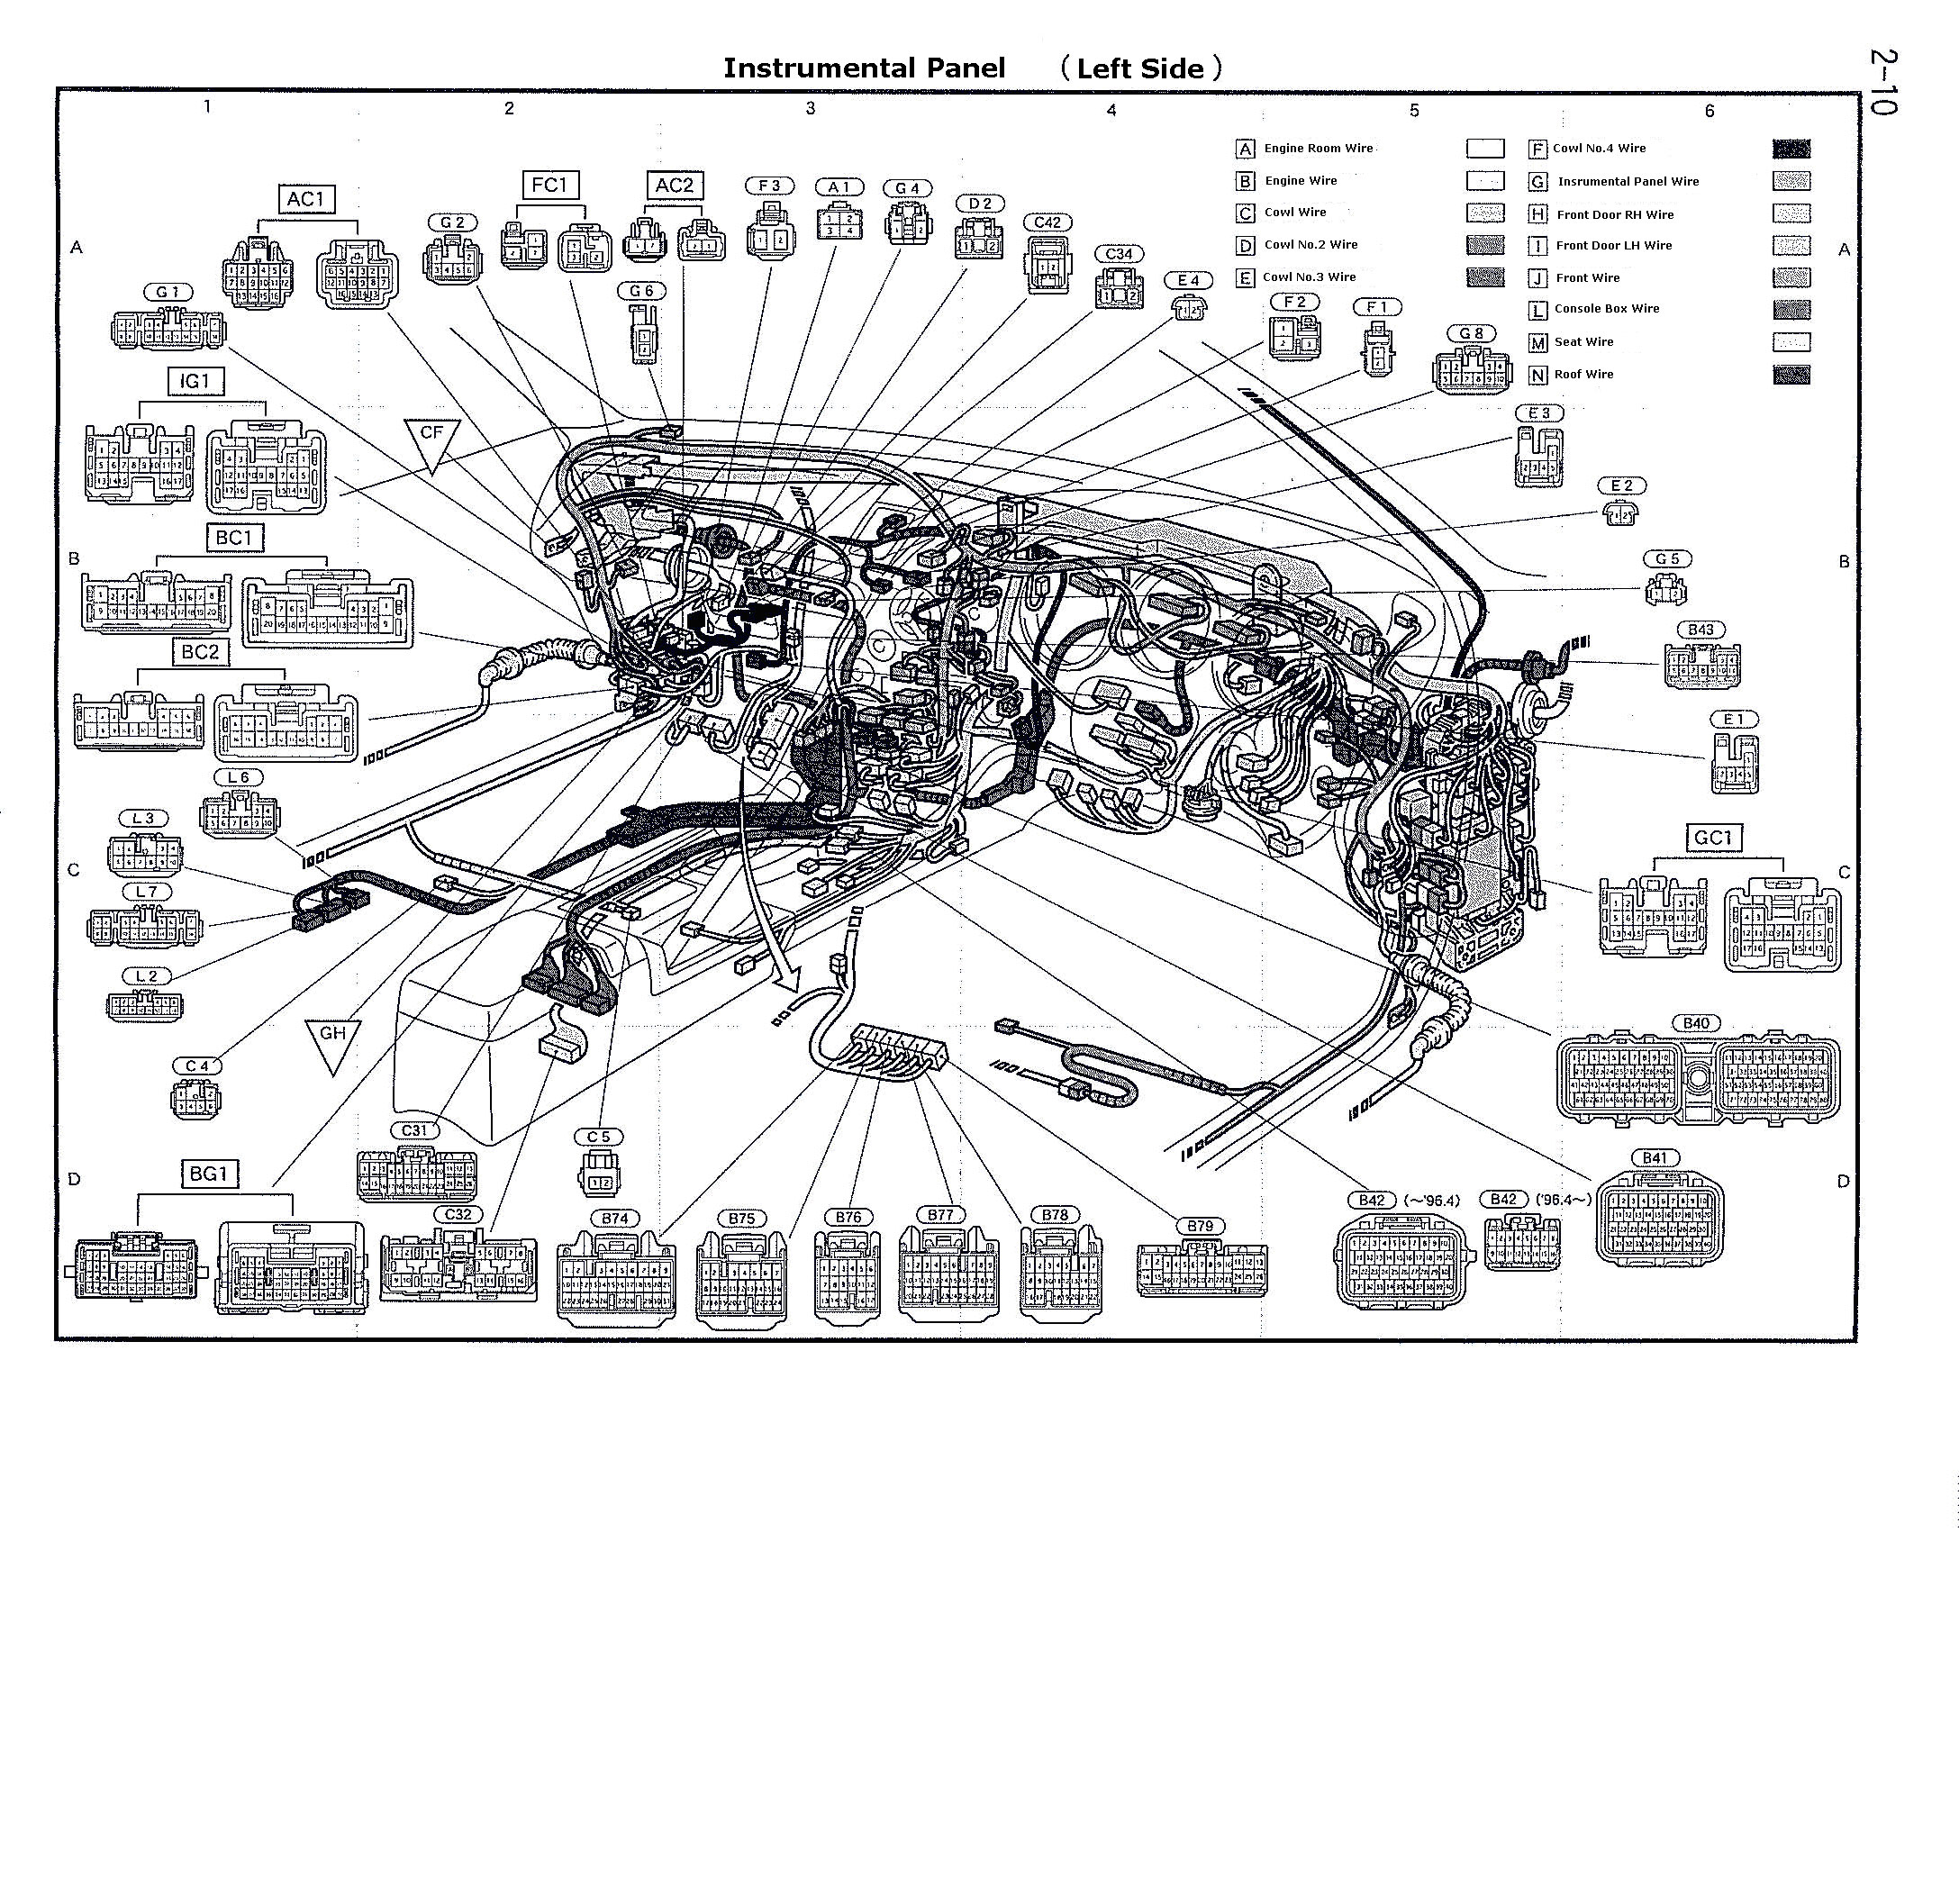 Supra Engine Diagram Mk Tsrm Toyota Repair Manual Links Jzgte Vvti Wiring Diagrams Jzgarage Disclaimer